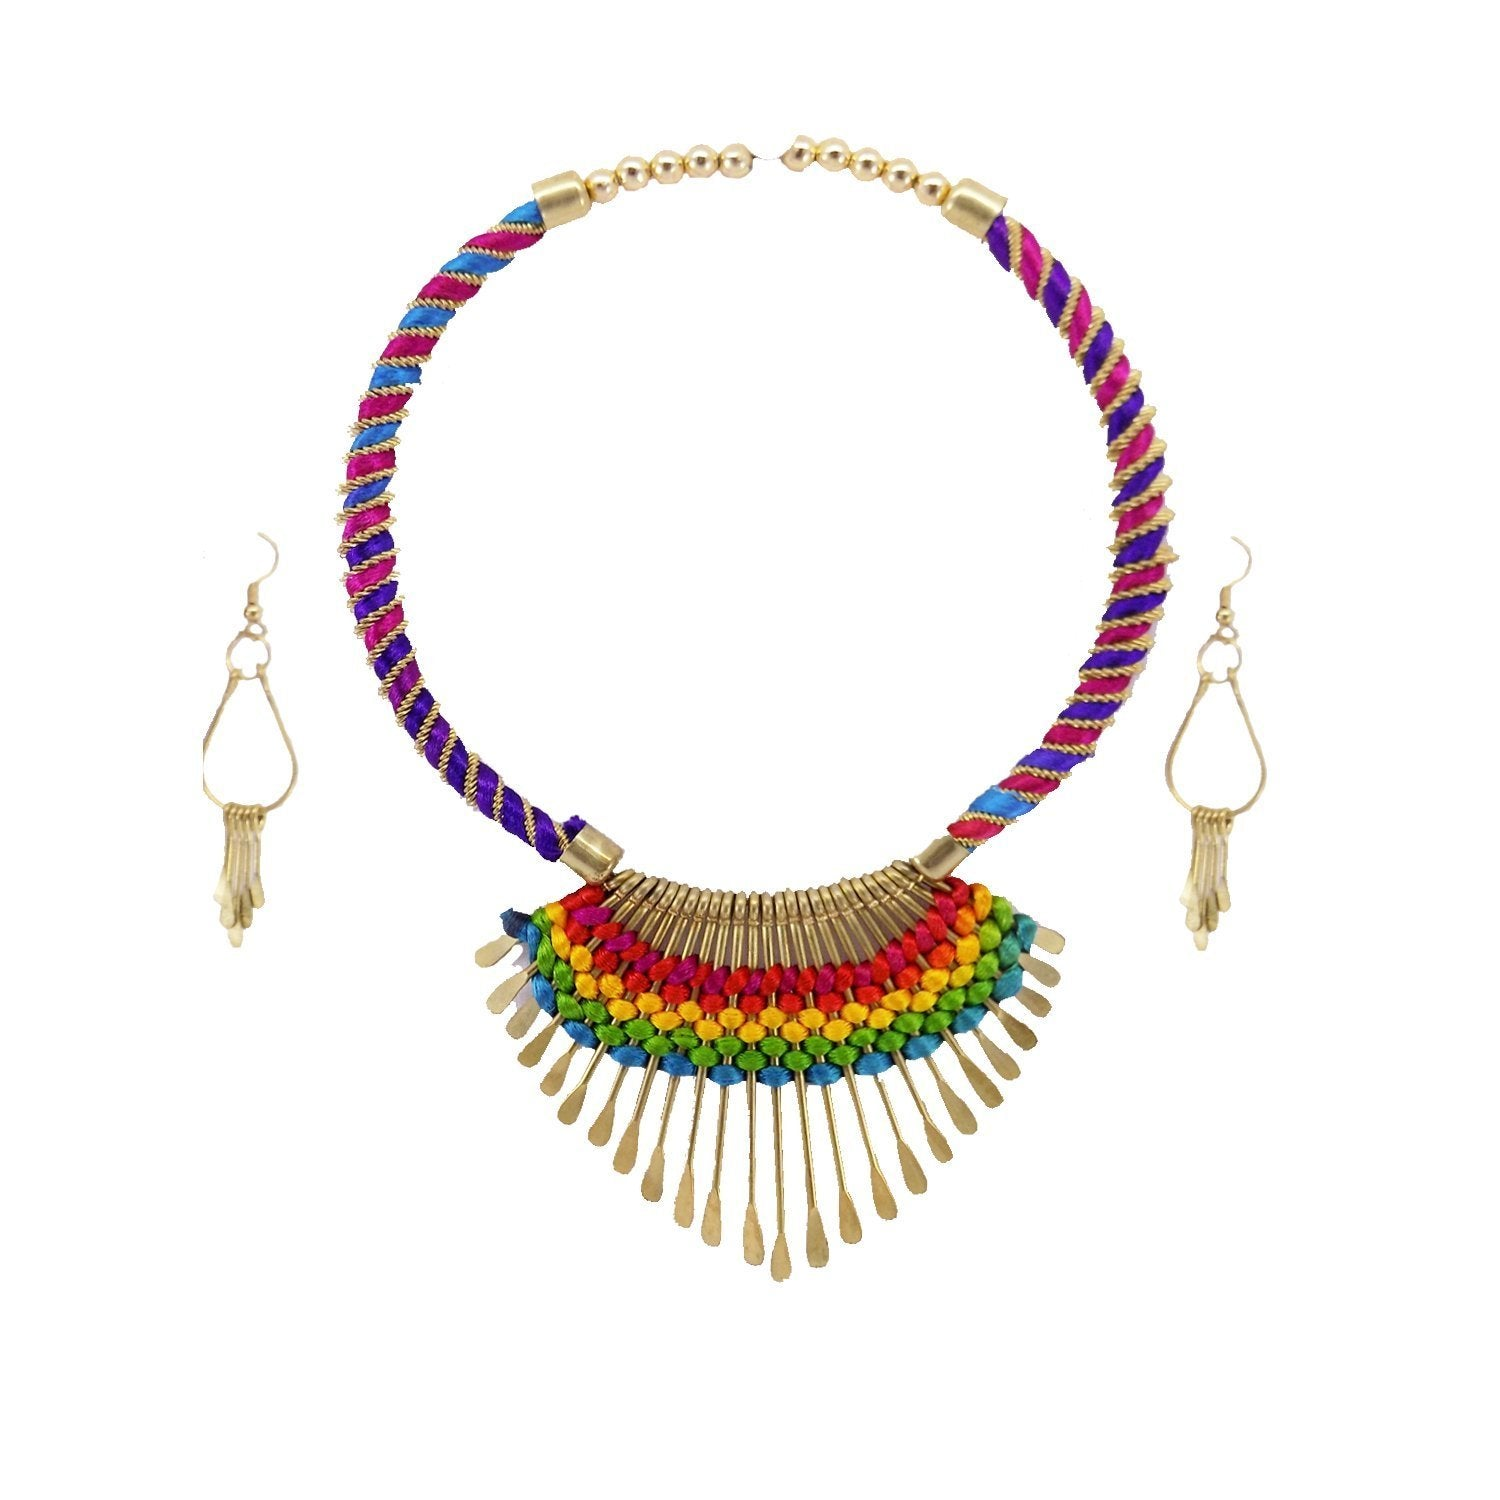 Choker Necklace with earrings For Women (Multicolor) - Bagaholics Gift